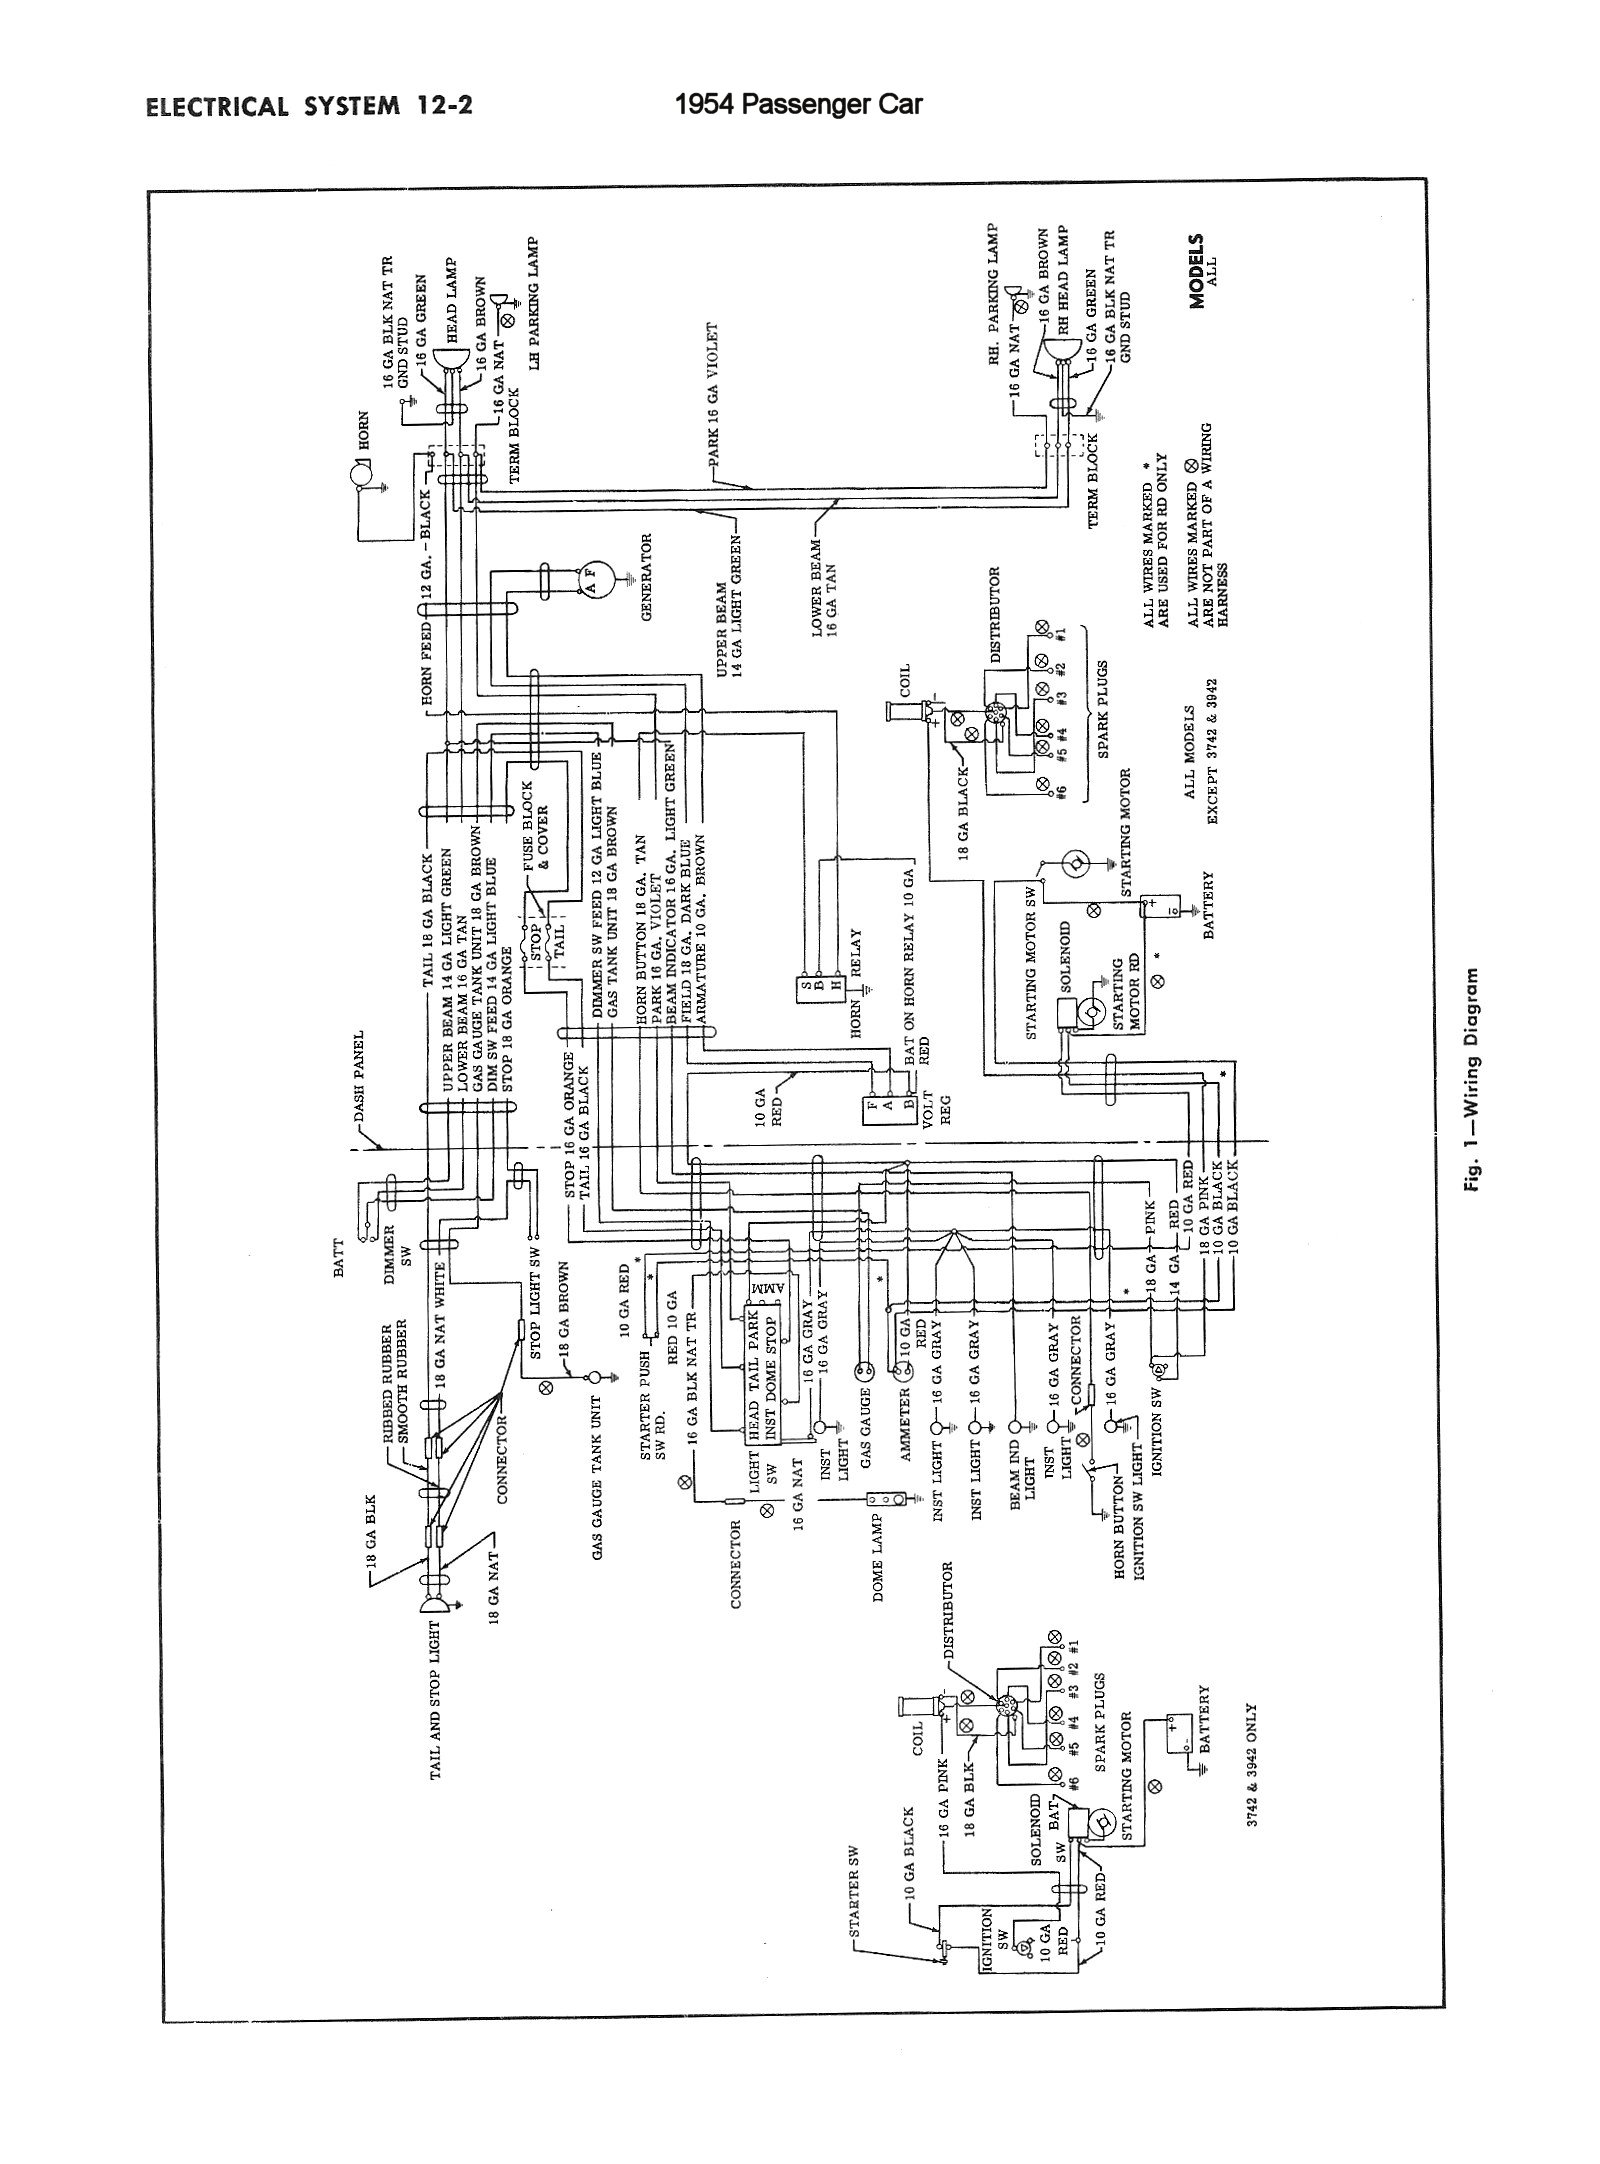 55 chevy truck instrument wiring diagram wire data u2022 rh coller site Chevy Truck Wiring Harness 1959 Chevy Apache Wiring-Diagram